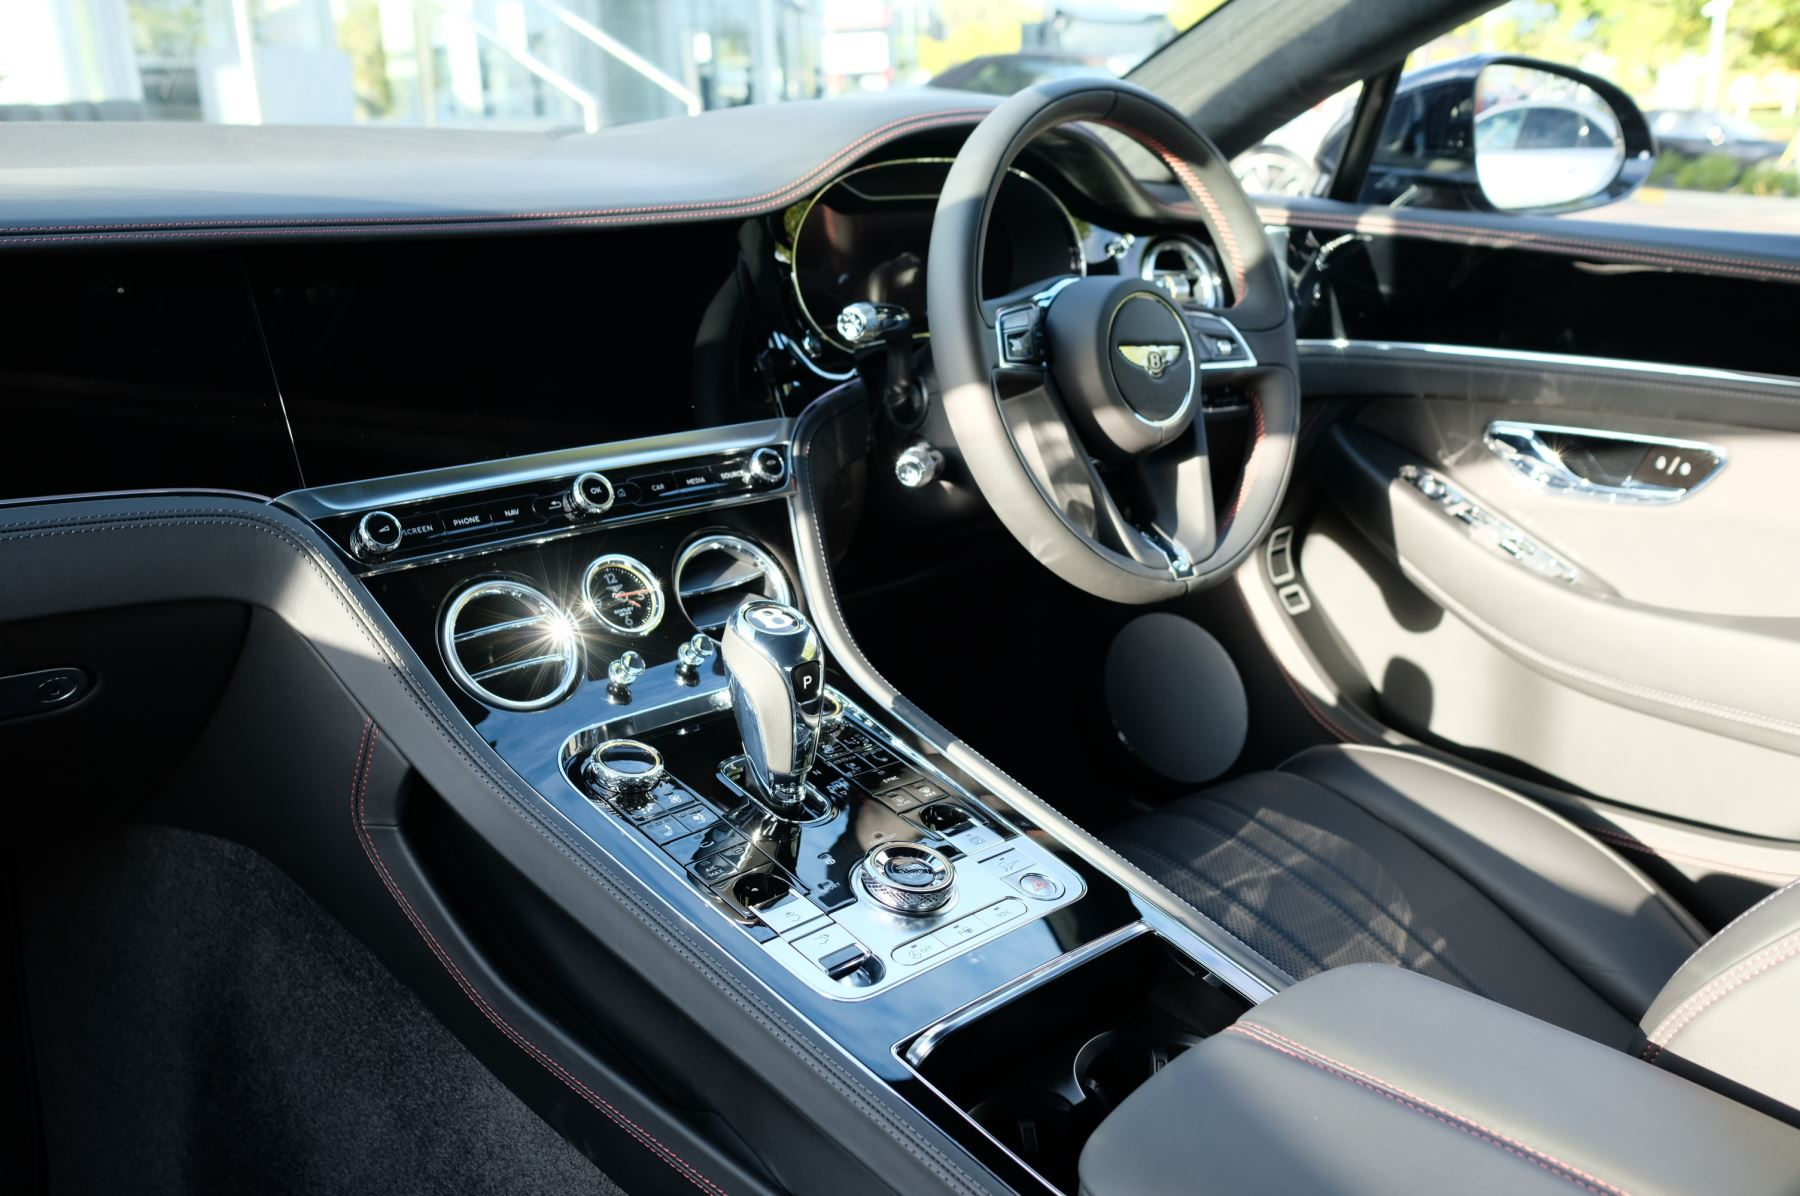 Bentley Continental GT 4.0 V8 2dr Auto [City+Touring Spec] image 11